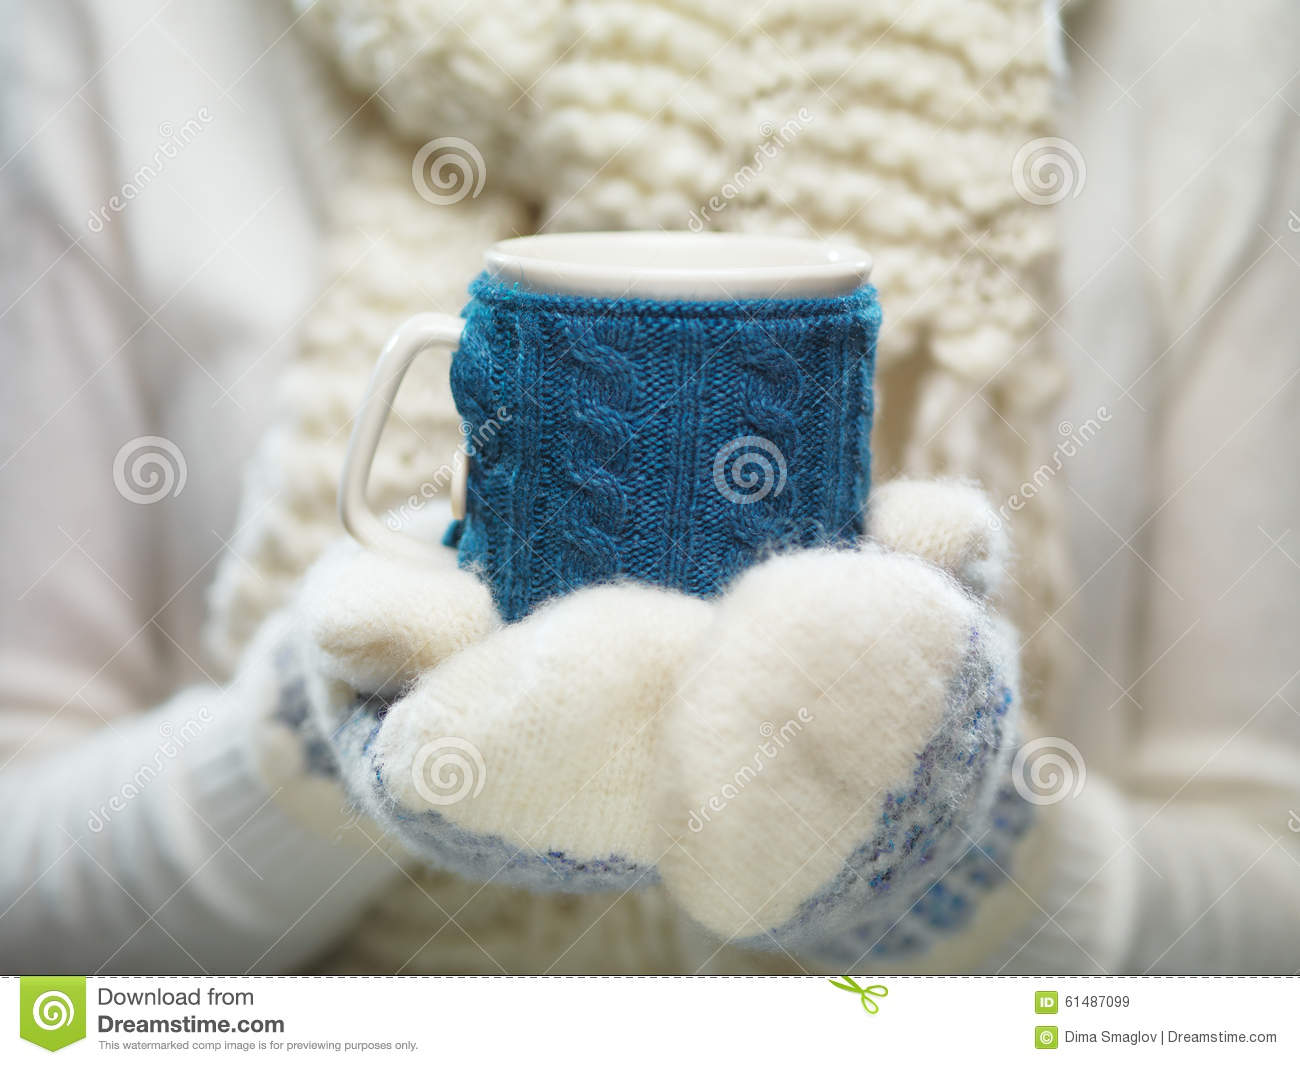 Knitting Pattern For Hand Holding Mittens : Woman Hands In White And Blue Mittens Holding A Cozy Knitted Cup With Hot Coc...